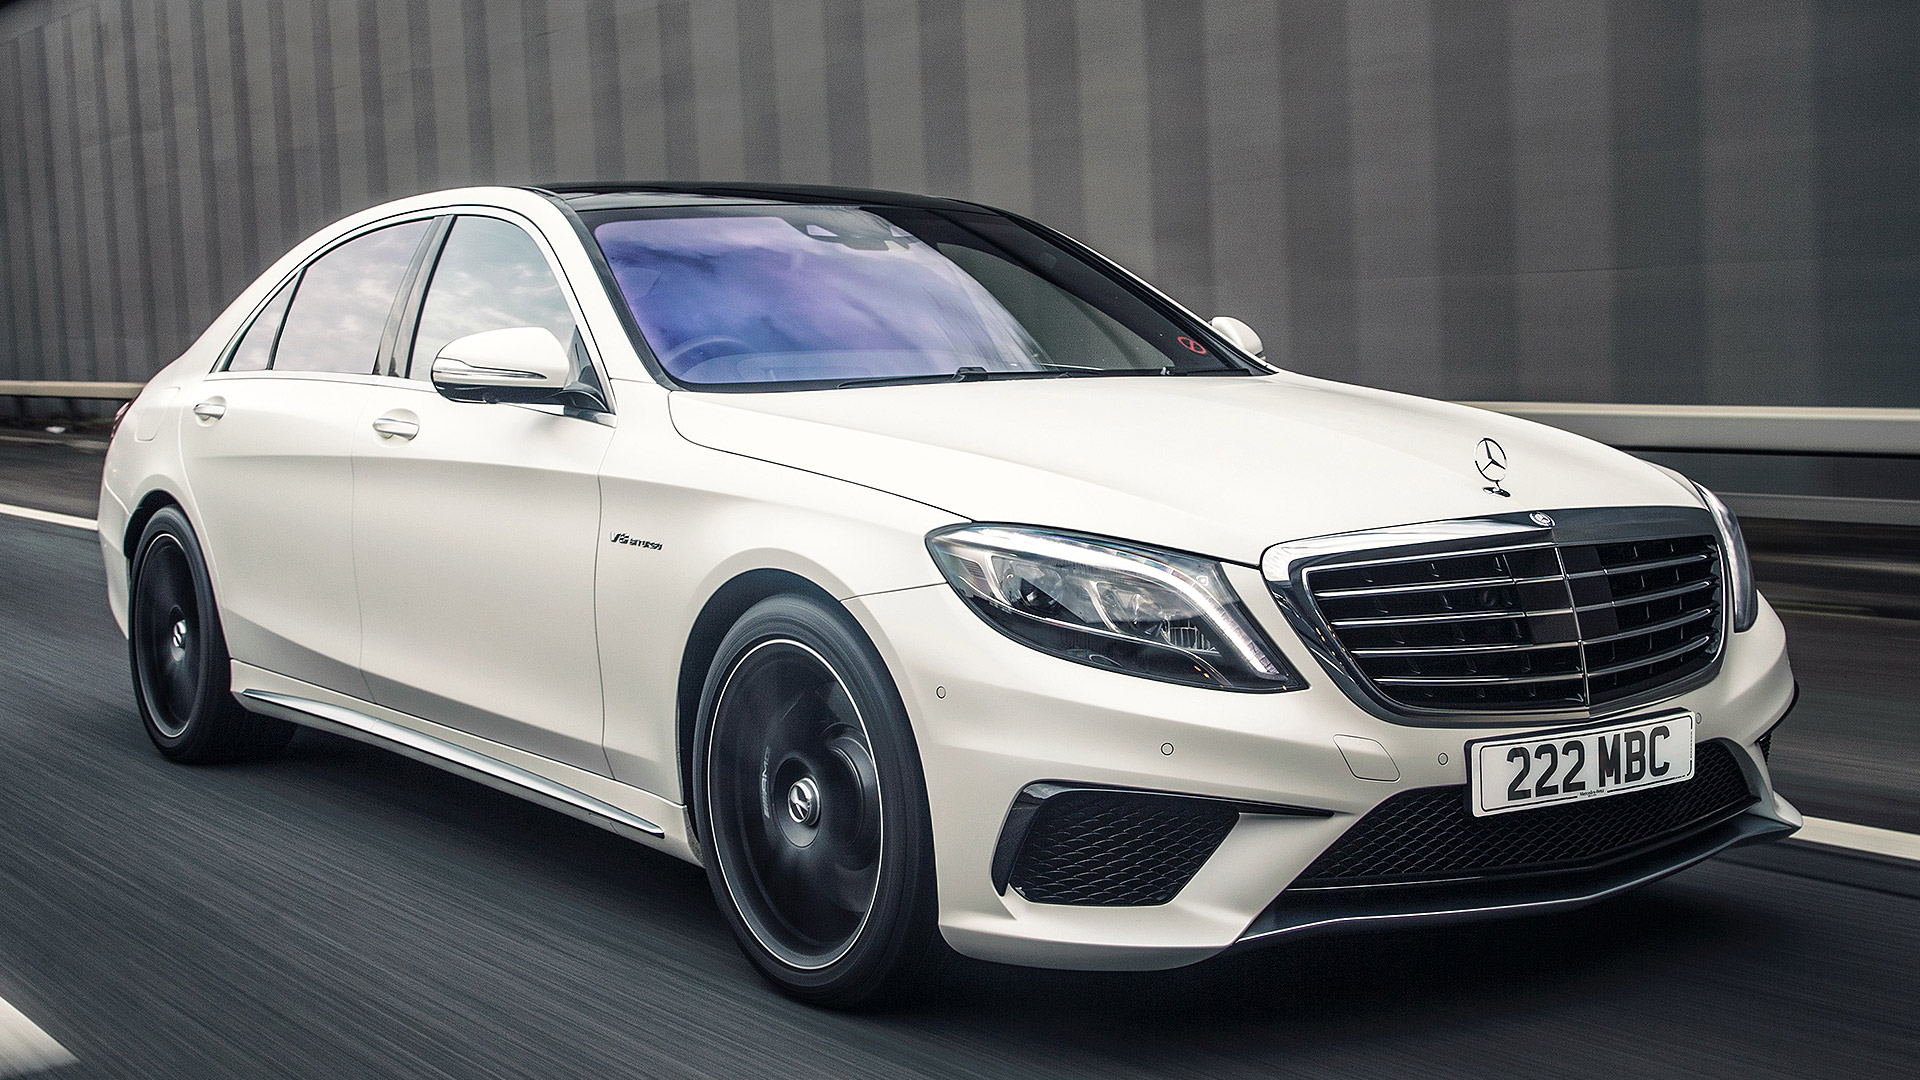 Mercedes Benz S Class 2018 Price Mileage Reviews Specification